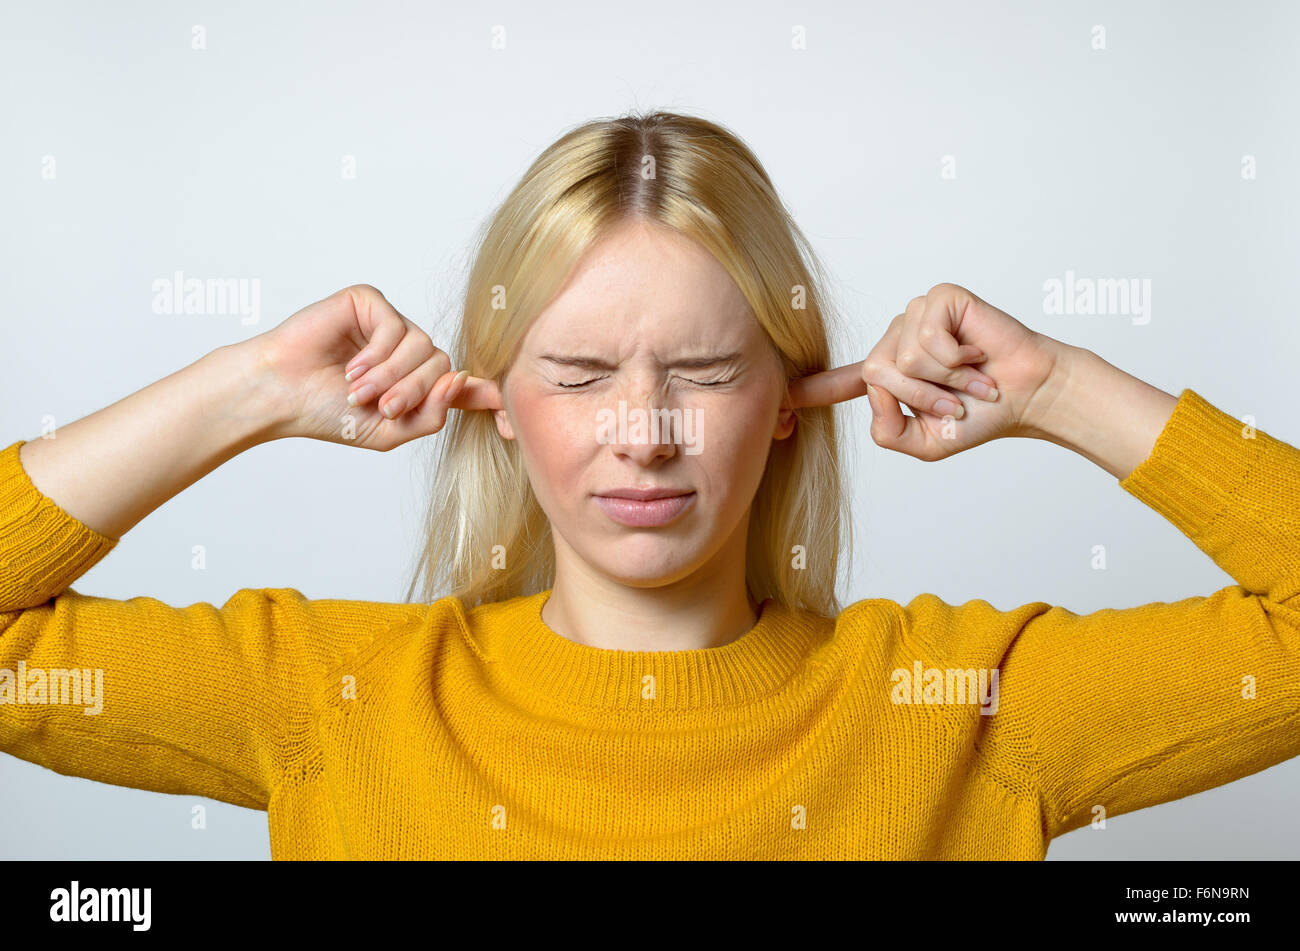 Close up Disgusted Young Woman Covering her Ears with Fingers, with Eyes Closed, Against Gray Background. - Stock Image